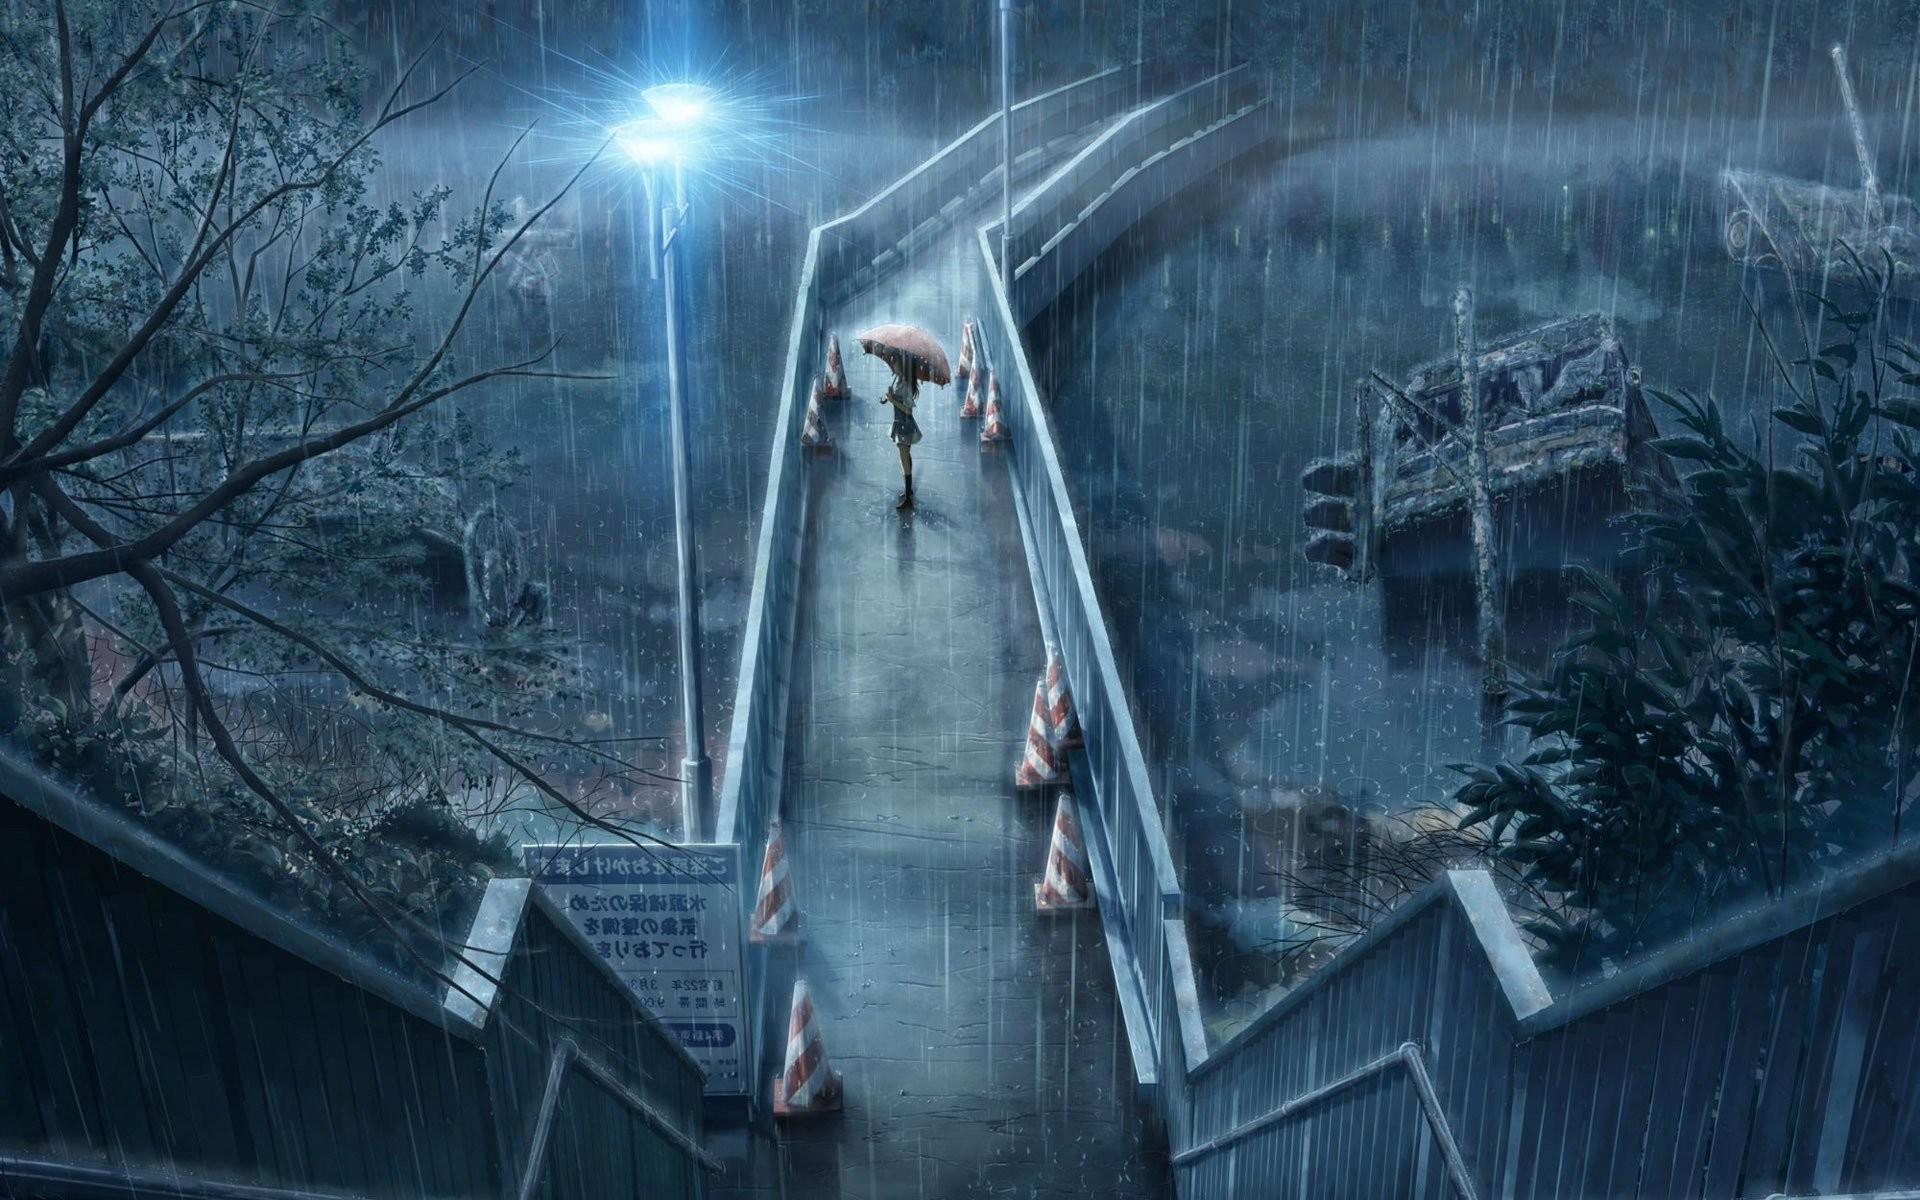 1920x1200 Cool Anime Wallpaper in Rain with Umbrella Beautiful rain hd clipart  ClipartFox